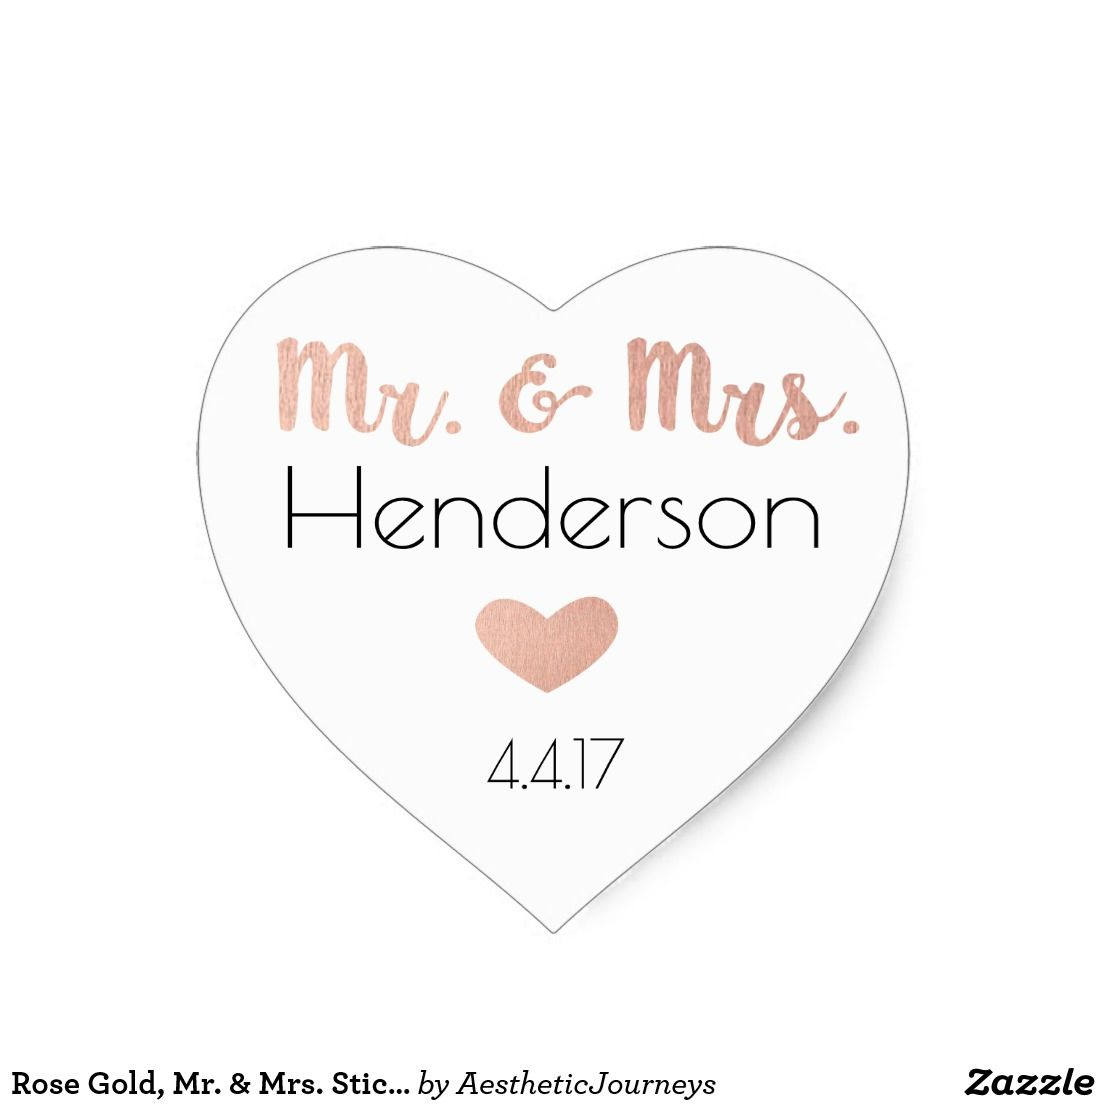 Rose Gold, Mr. & Mrs. Stickers- Wedding Favors Heart Sticker ...